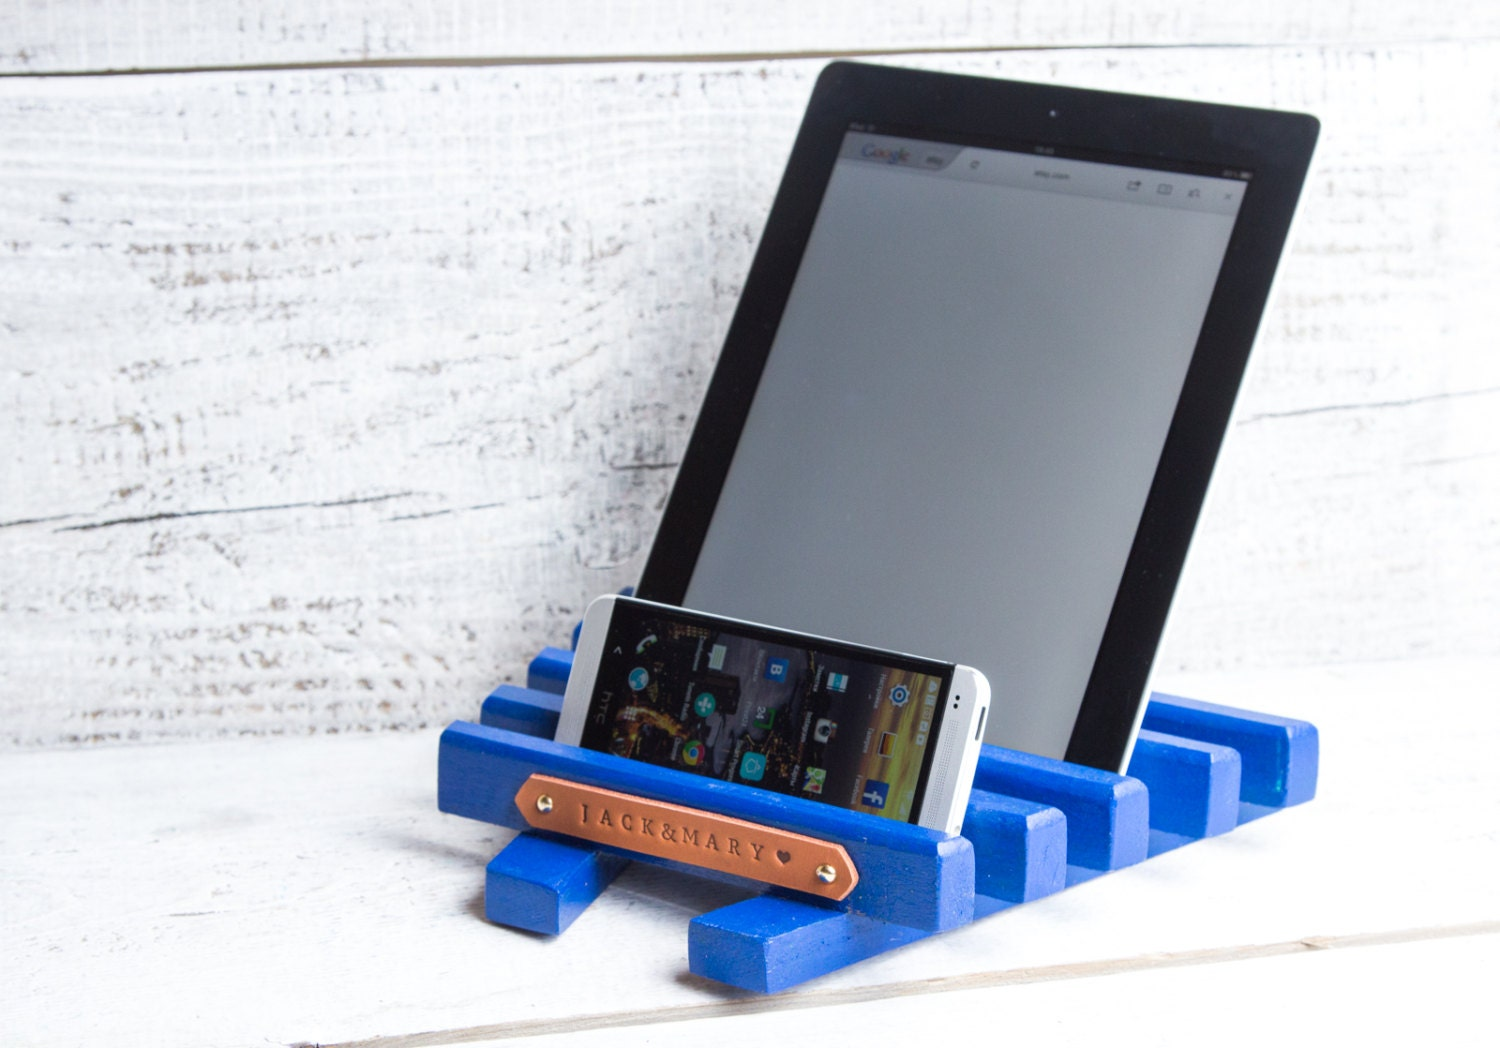 Personalized Wooden Tablet Holder. IPad Stand Fits By ApricotArt. Full resolution‎  portrait, nominally Width 1500 Height 1048 pixels, portrait with #004AC0.